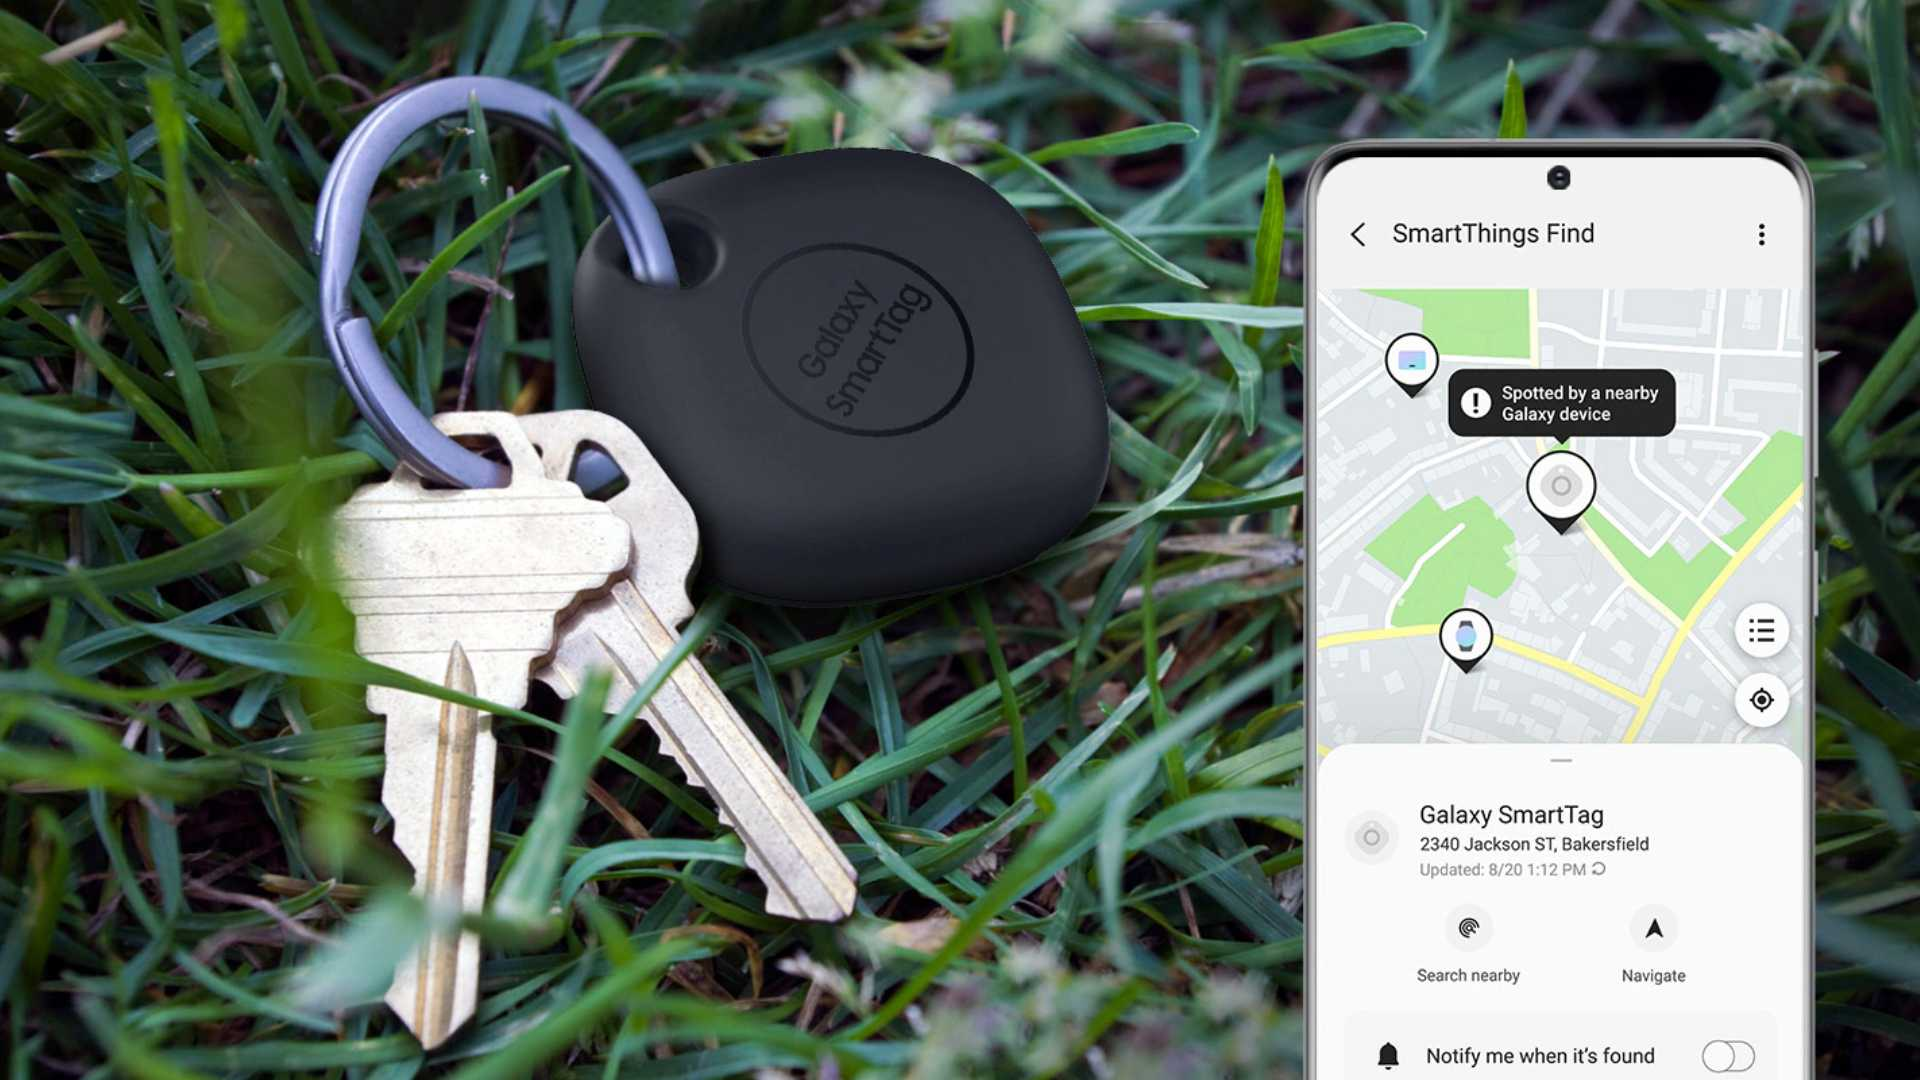 Samsung SmartThings update helps prevent unwanted tag-based tracking